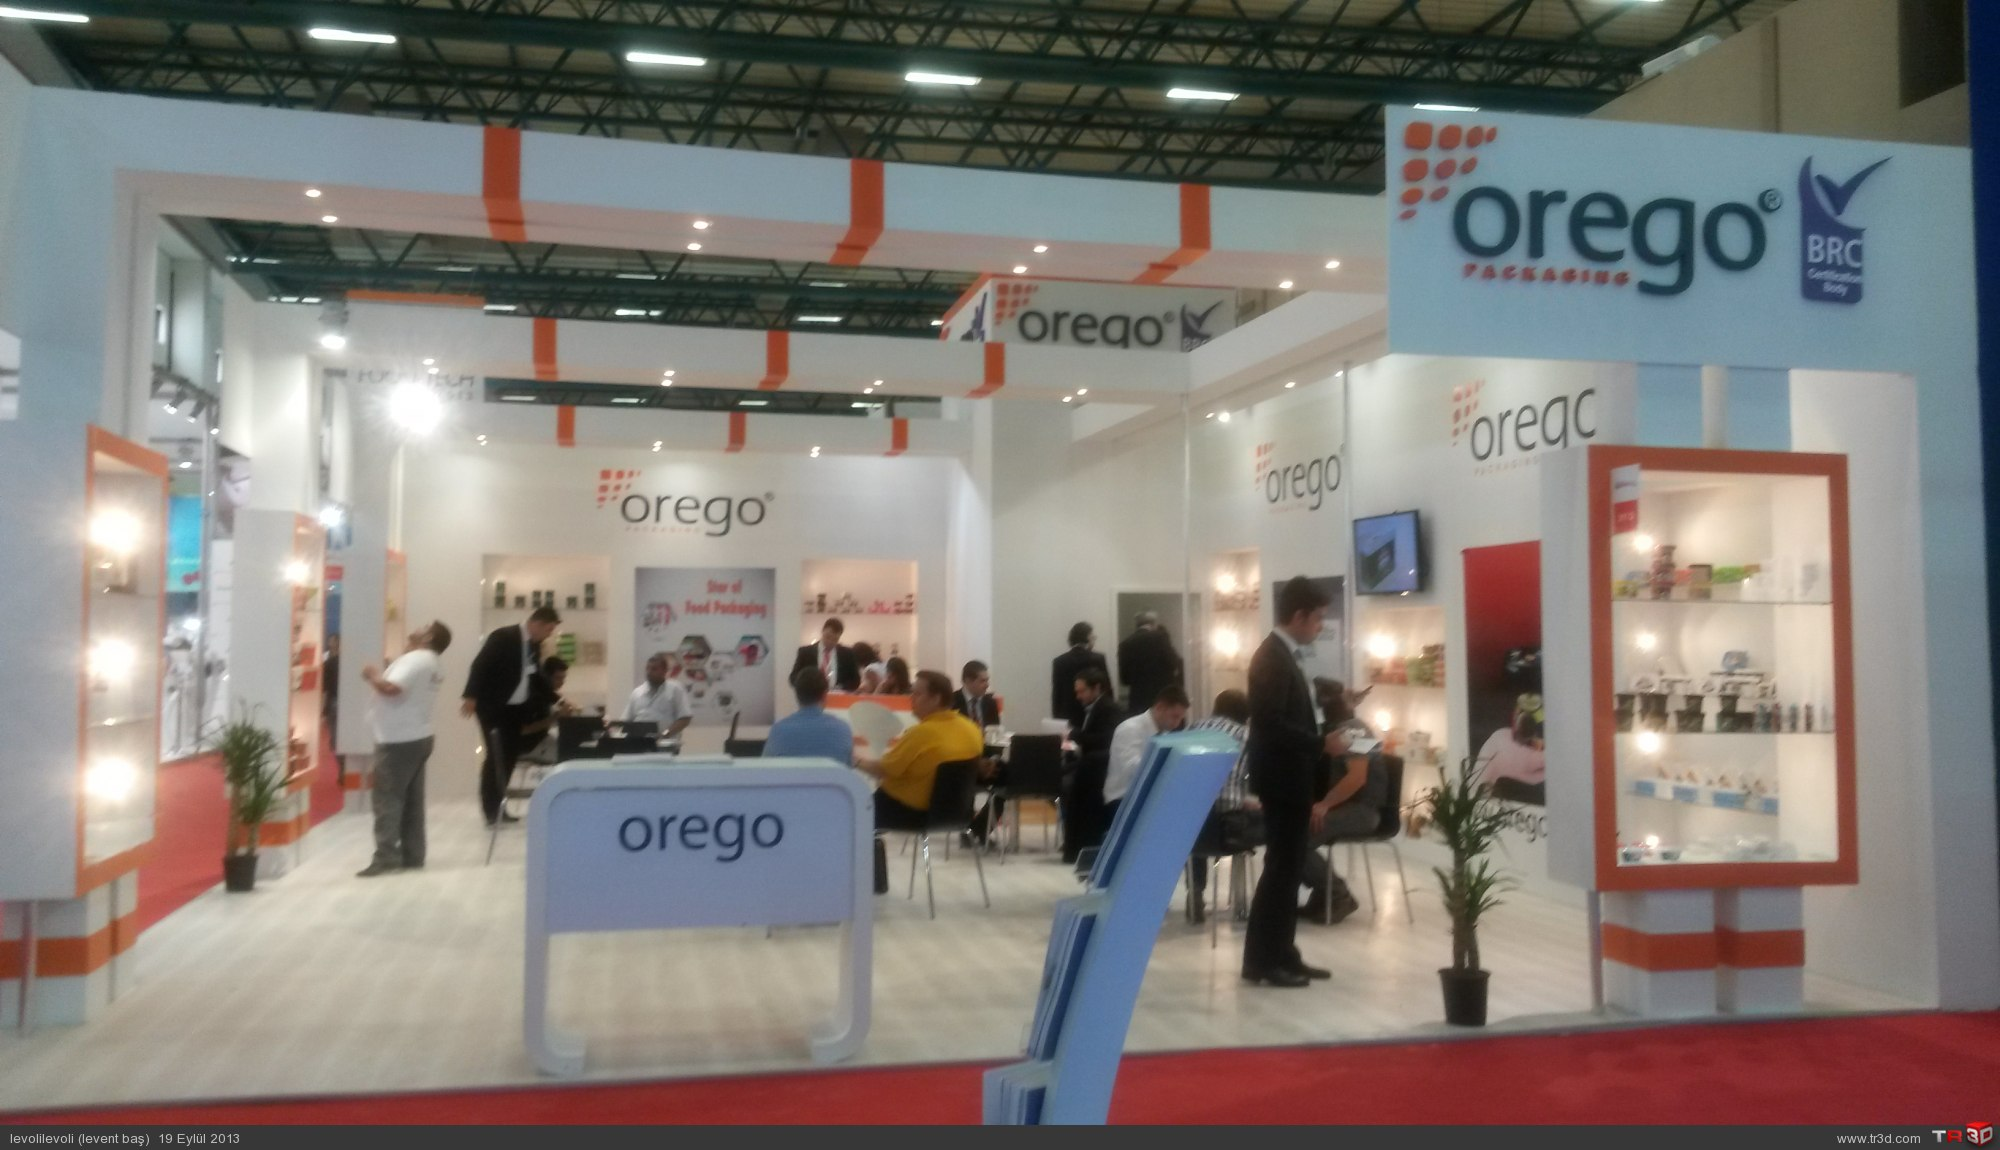 AHŞAP STAND OREGO 3